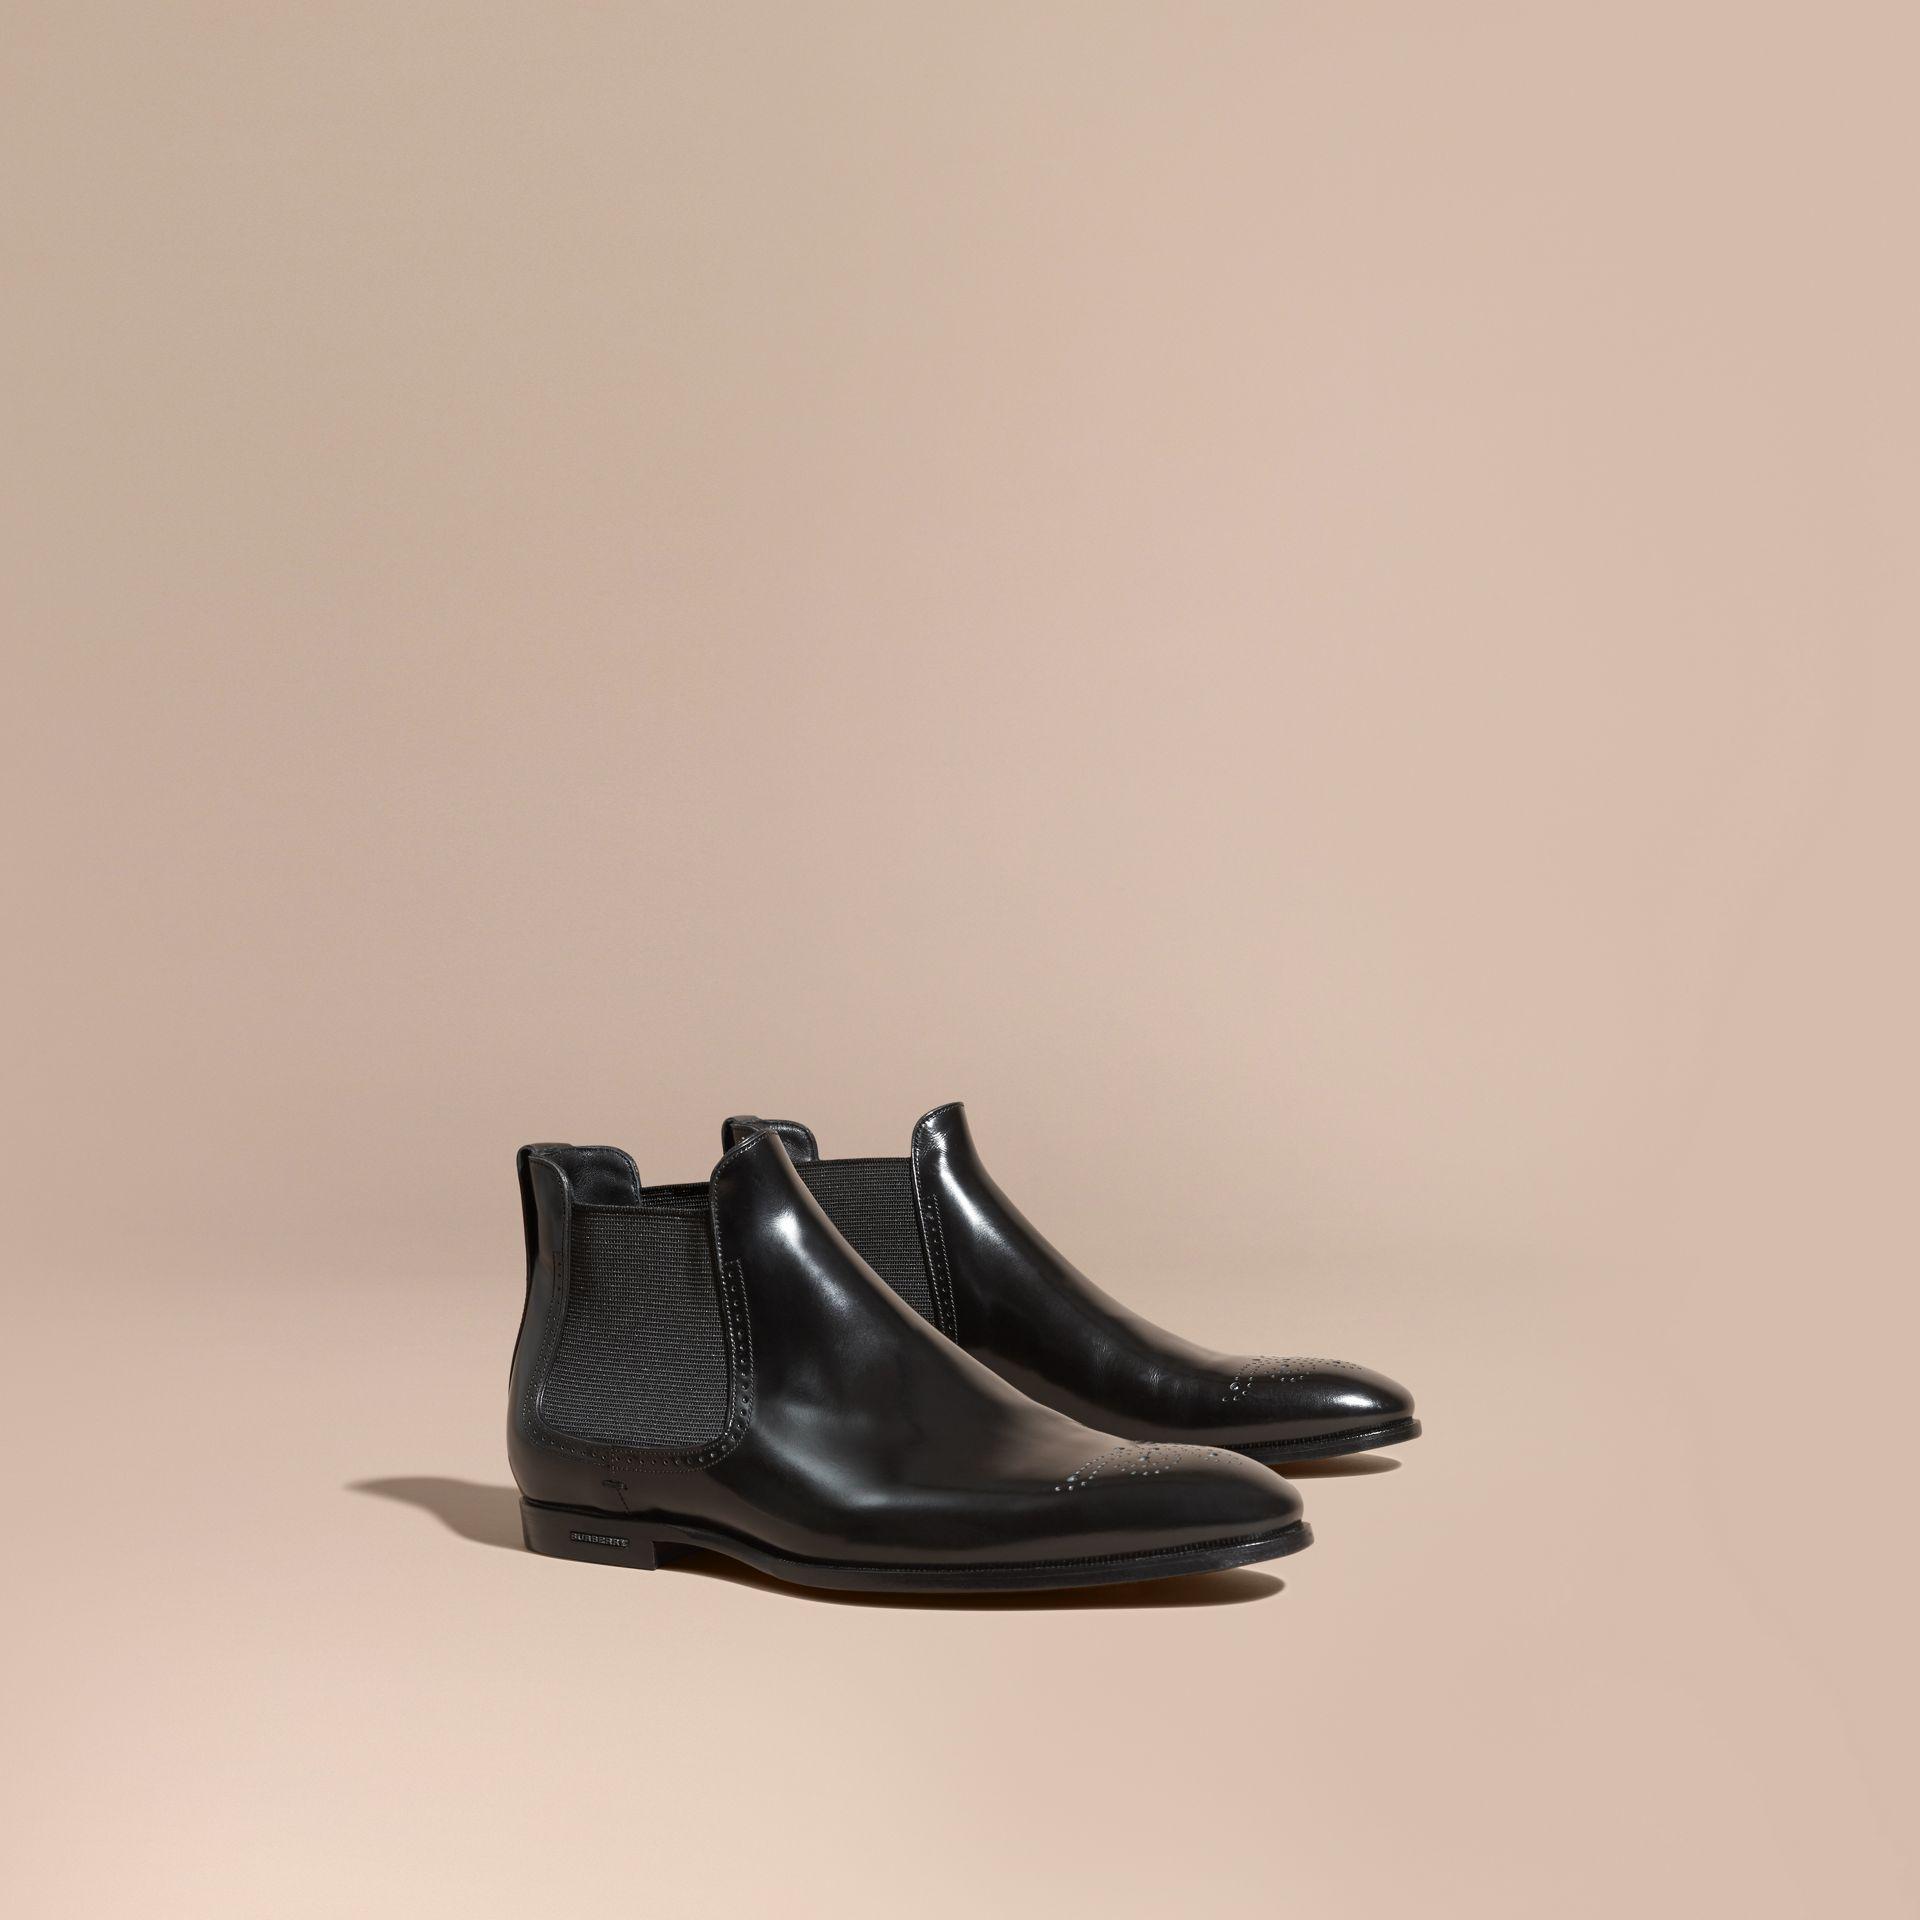 Perforated Detail Leather Chelsea Boots Black - gallery image 1